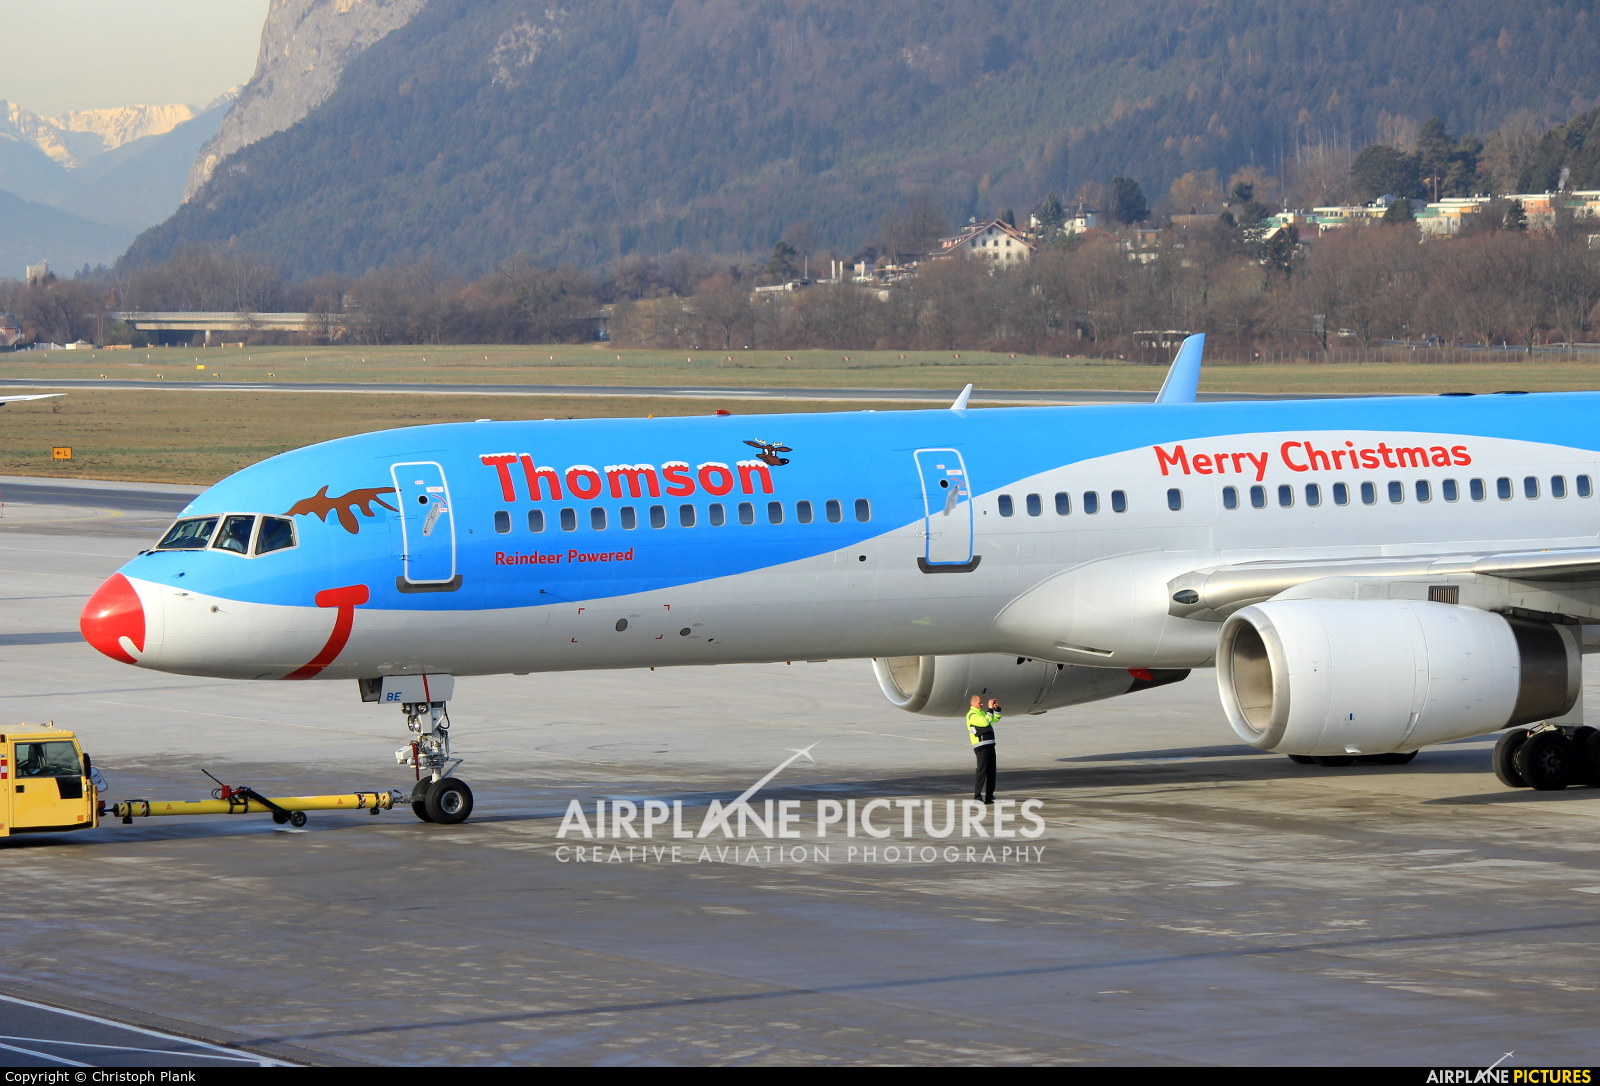 Thomson/Thomsonfly G-OOBE aircraft at Innsbruck